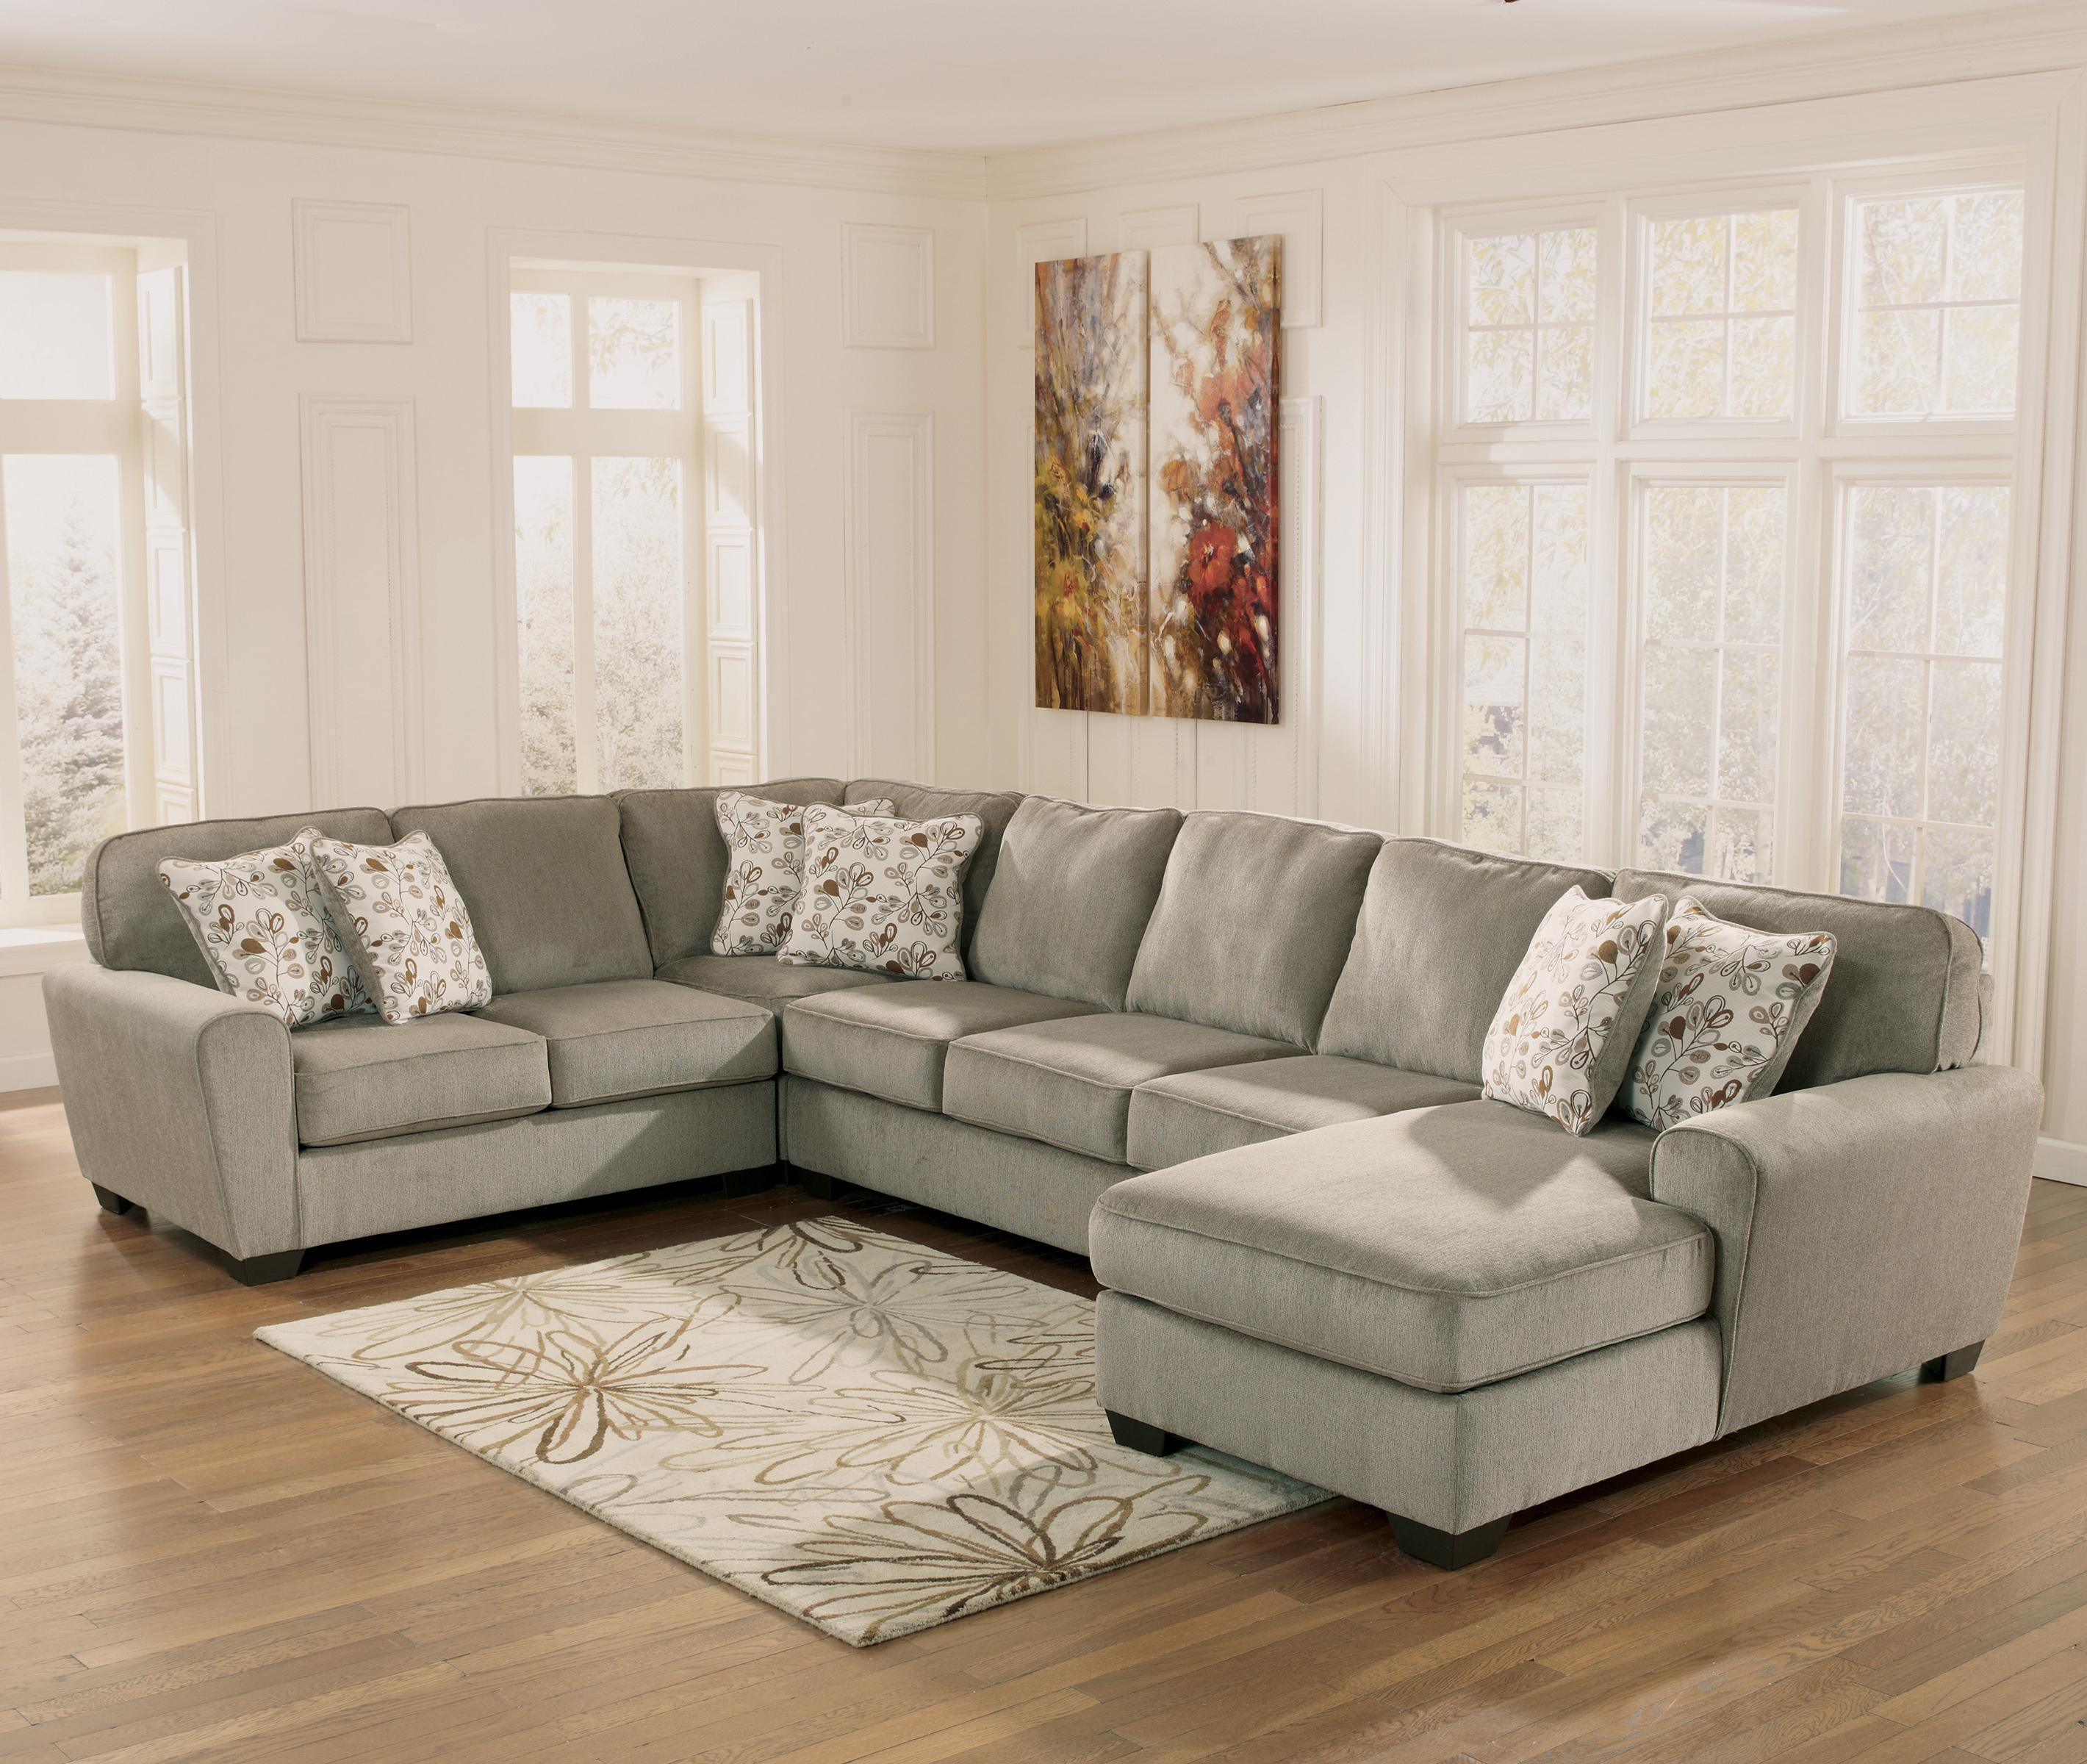 Patola Park - Patina 4-Piece Sectional with Right Chaise by Ashley Furniture at Lapeer Furniture & Mattress Center